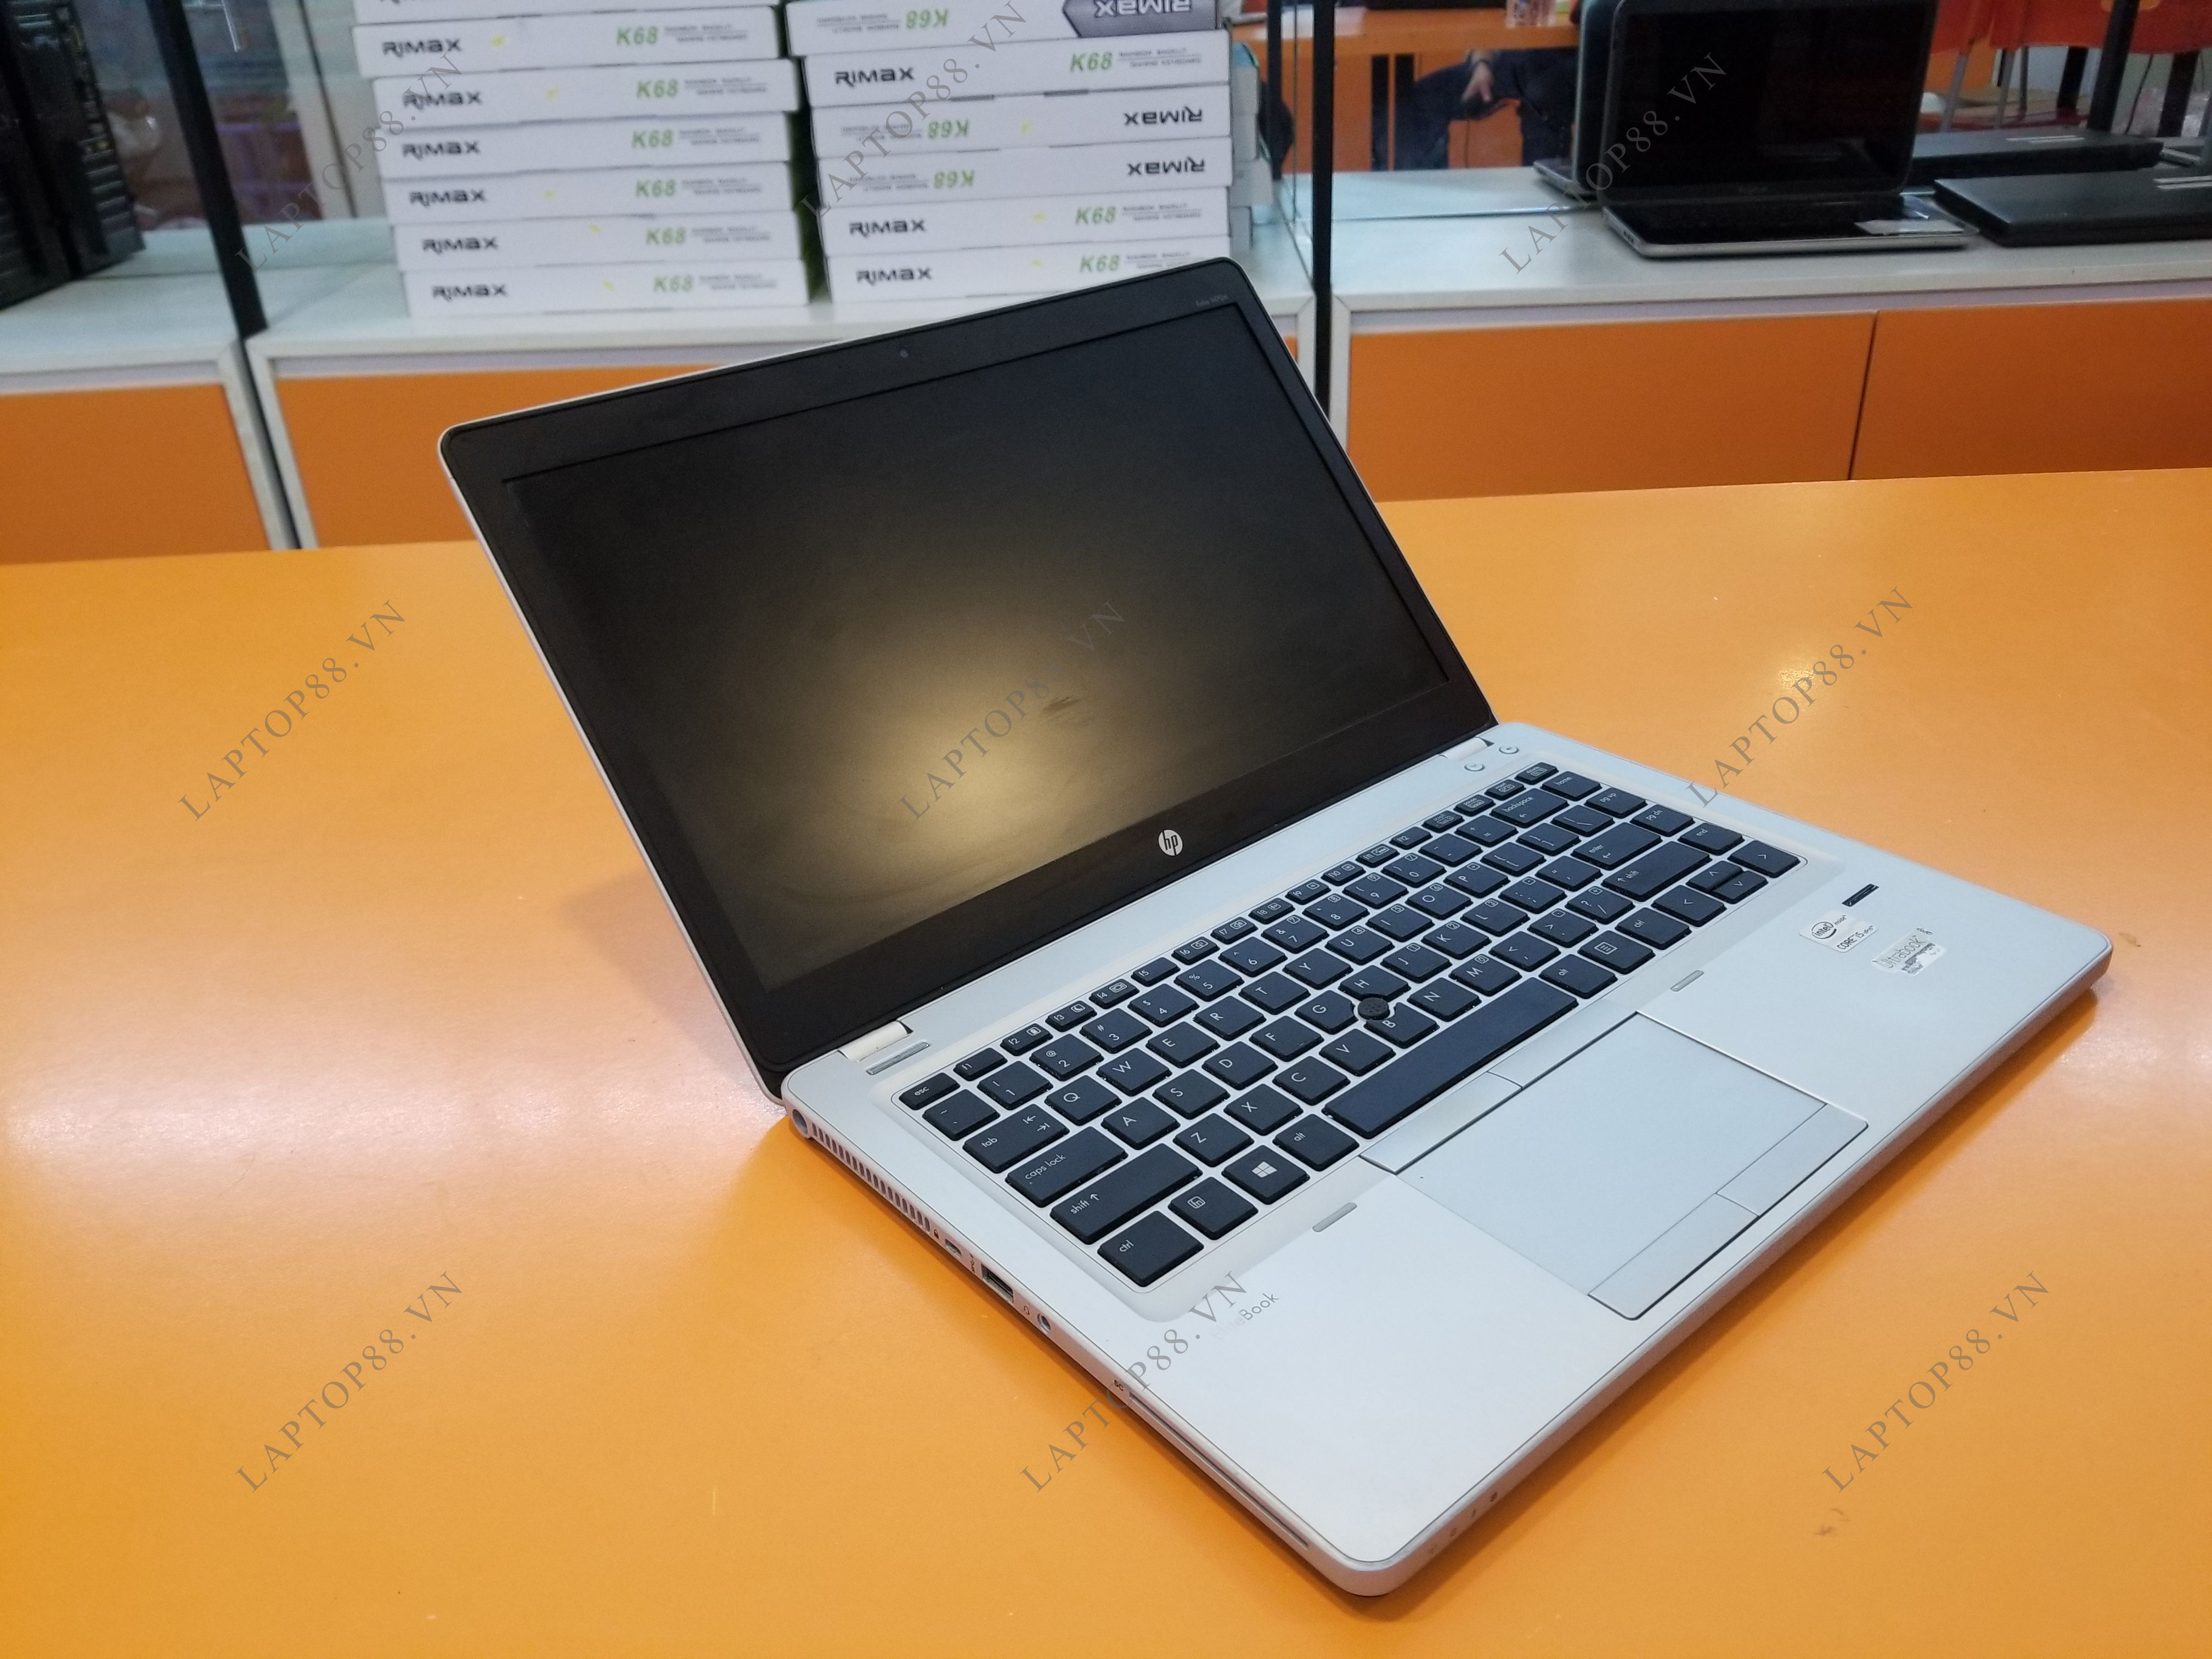 Laptop cũ Elitebook HP Folio 9470m (Core i5 3437U, 4GB, HDD 250GB, HD Graphics 4000, 14 inch) - Bảo hành 1 năm_5